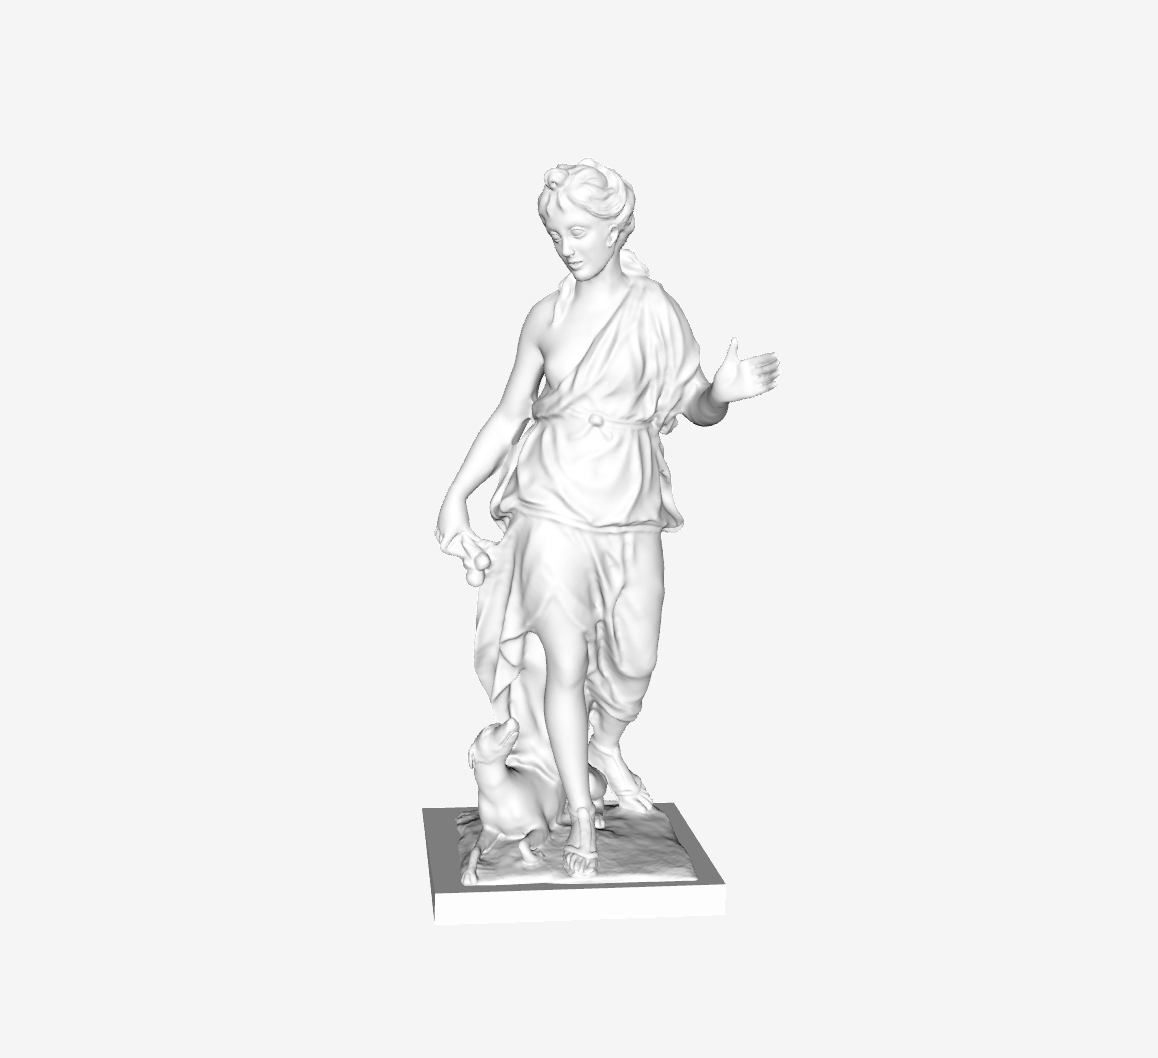 Capture d'écran 2018-09-21 à 11.35.40.png Download free STL file Companion of Diana at the Louvre, Paris, France • 3D printing design, Louvre